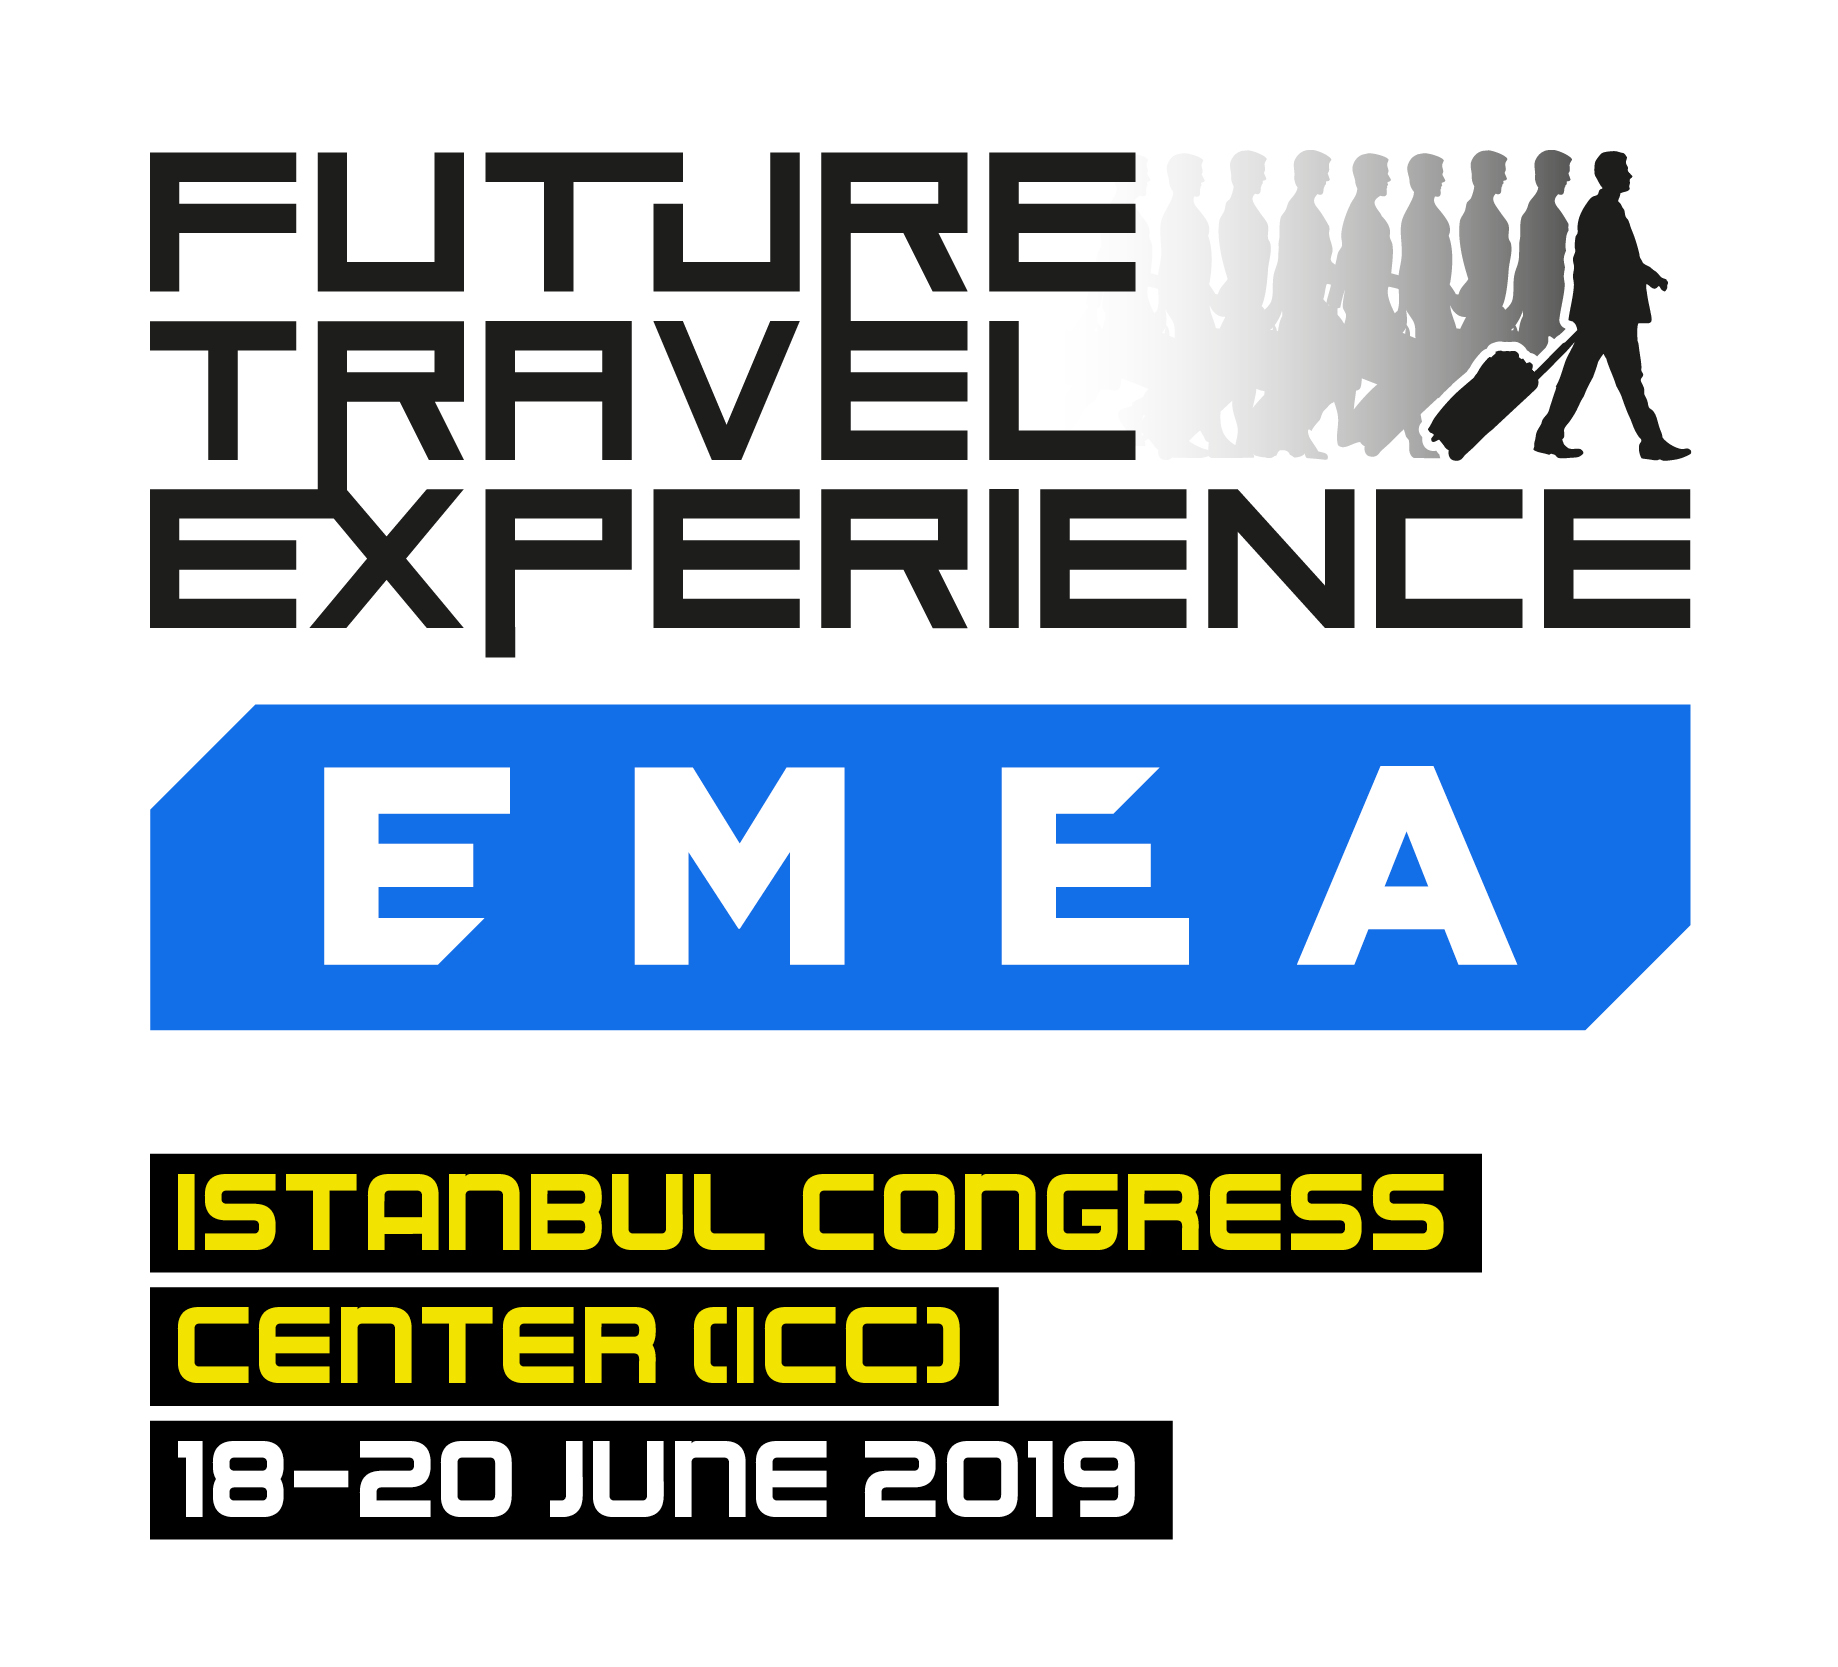 Future Travel Experience EMEA 2019